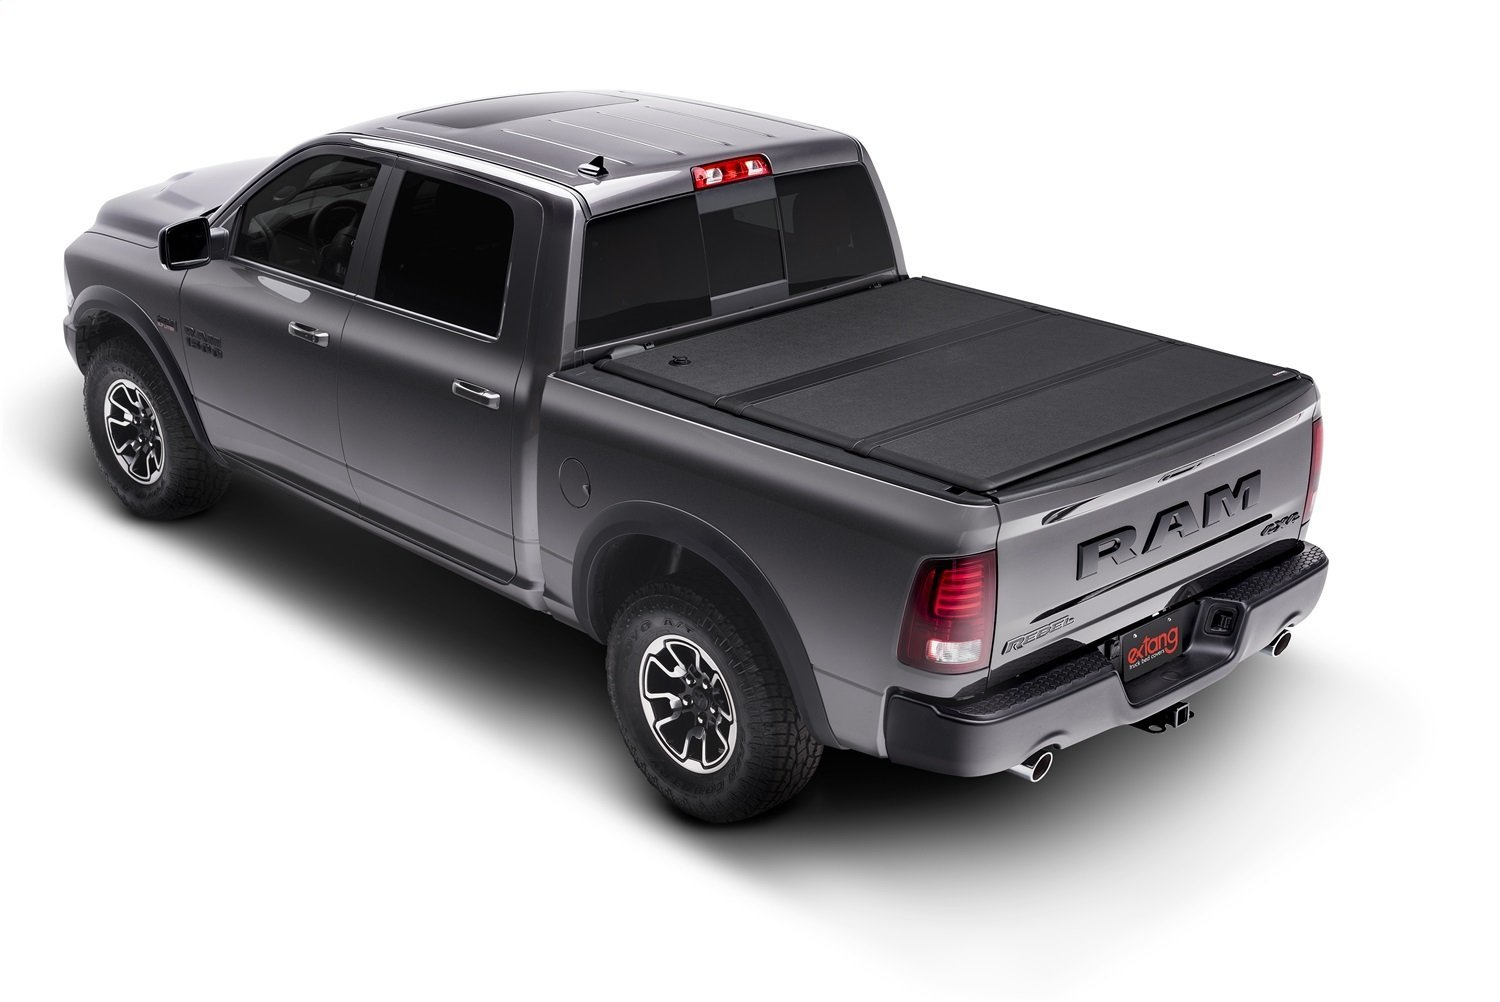 Best exhaust system for Ram 1500